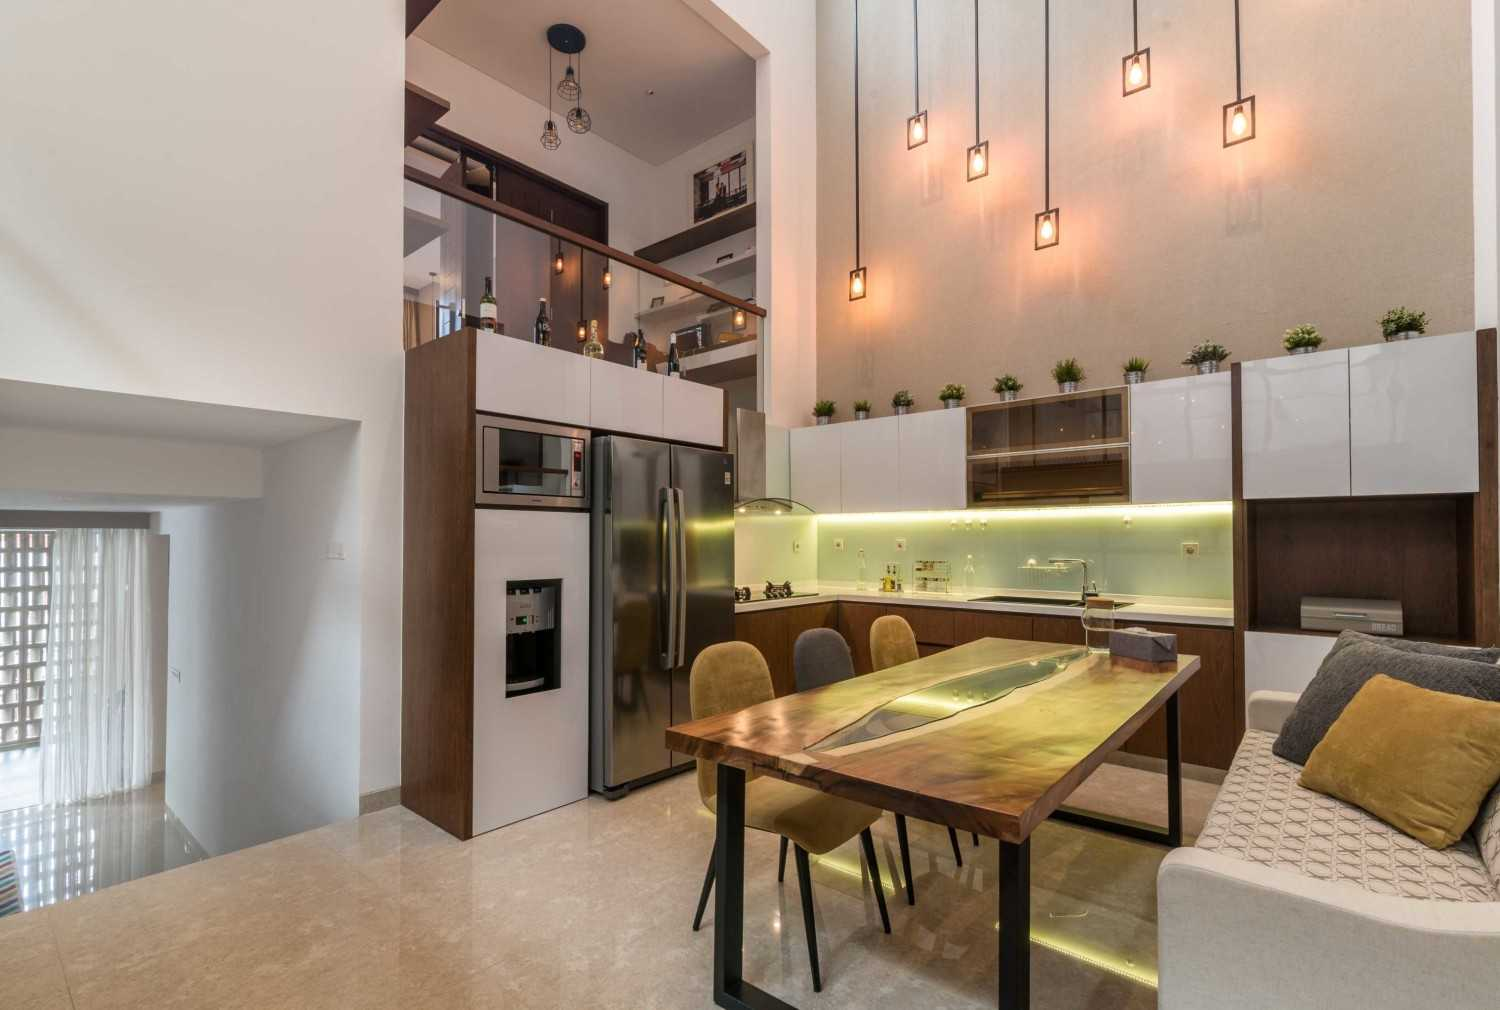 Archid Design&build Dast Residence Bandung, Kota Bandung, Jawa Barat, Indonesia Bandung, Kota Bandung, Jawa Barat, Indonesia Dining And Kitchen Area  49042